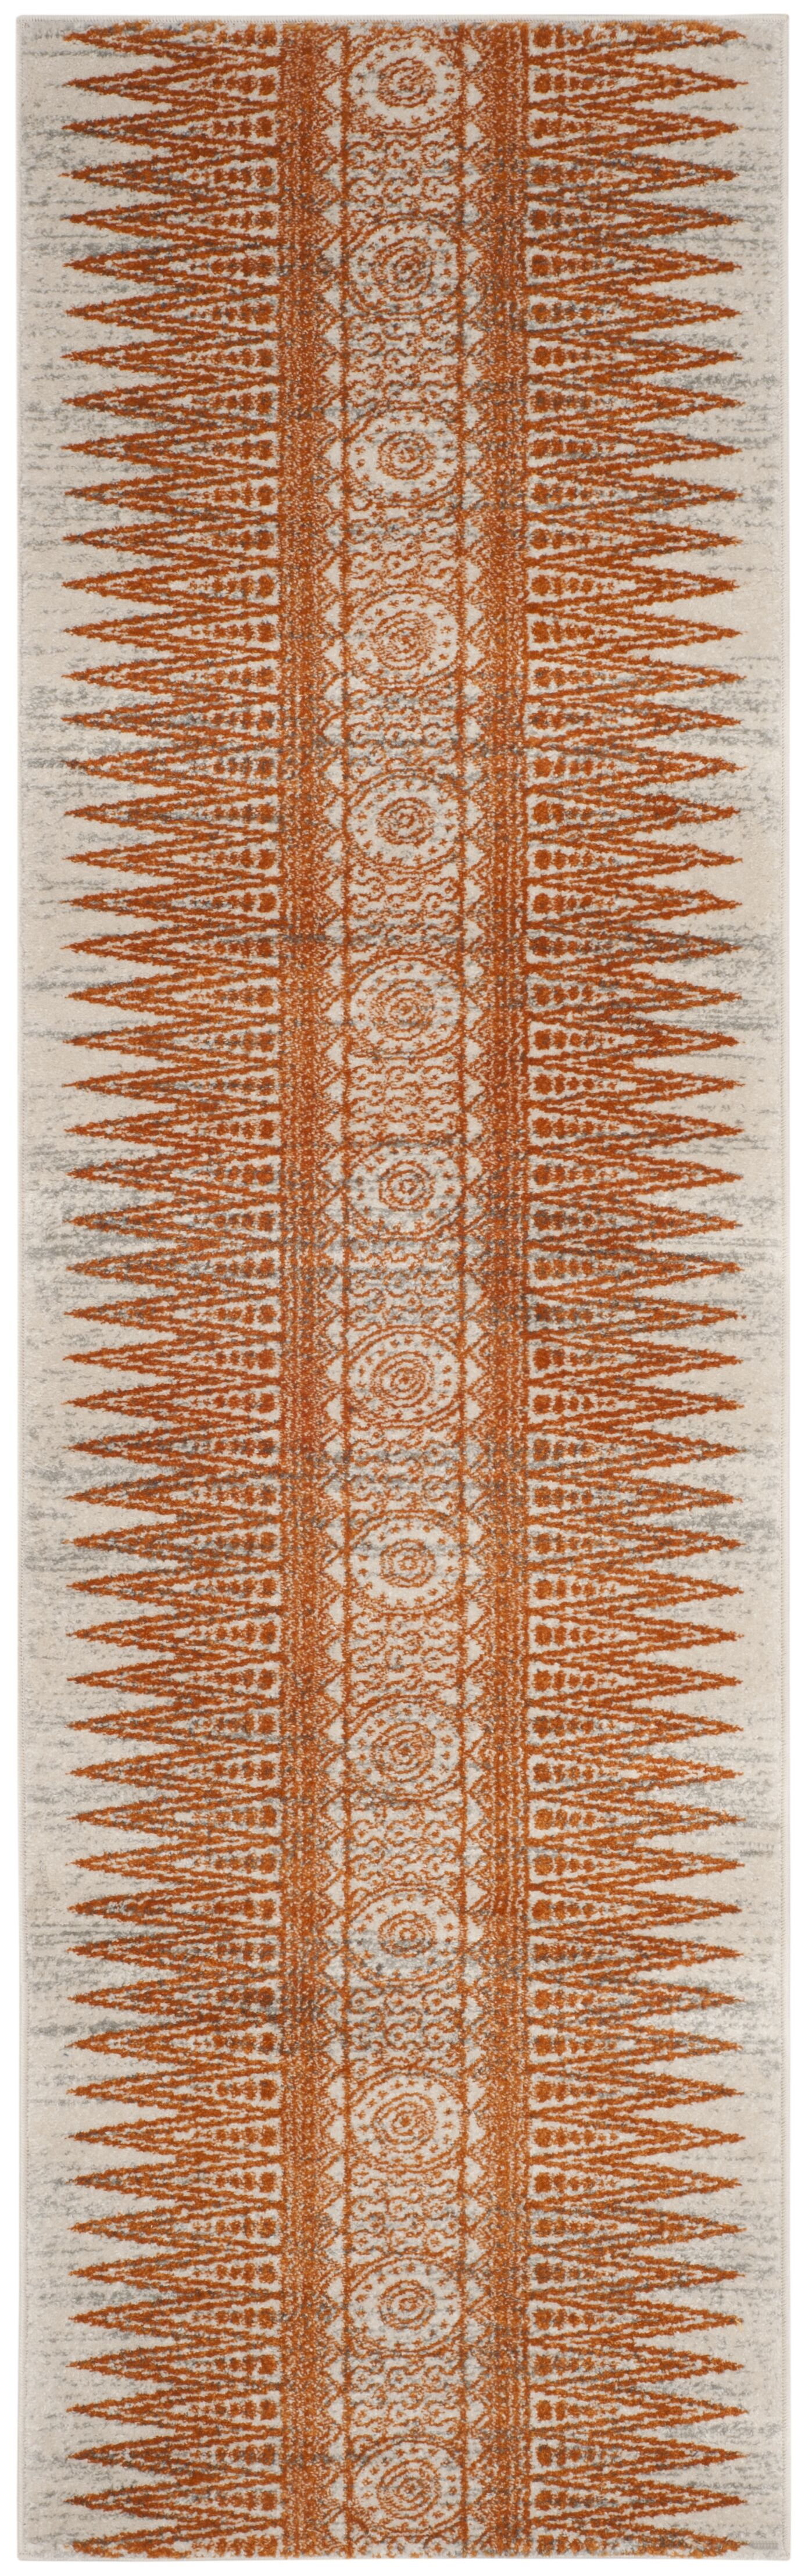 Elson Ivory/Orange Area Rug Rug Size: Runner 2'2